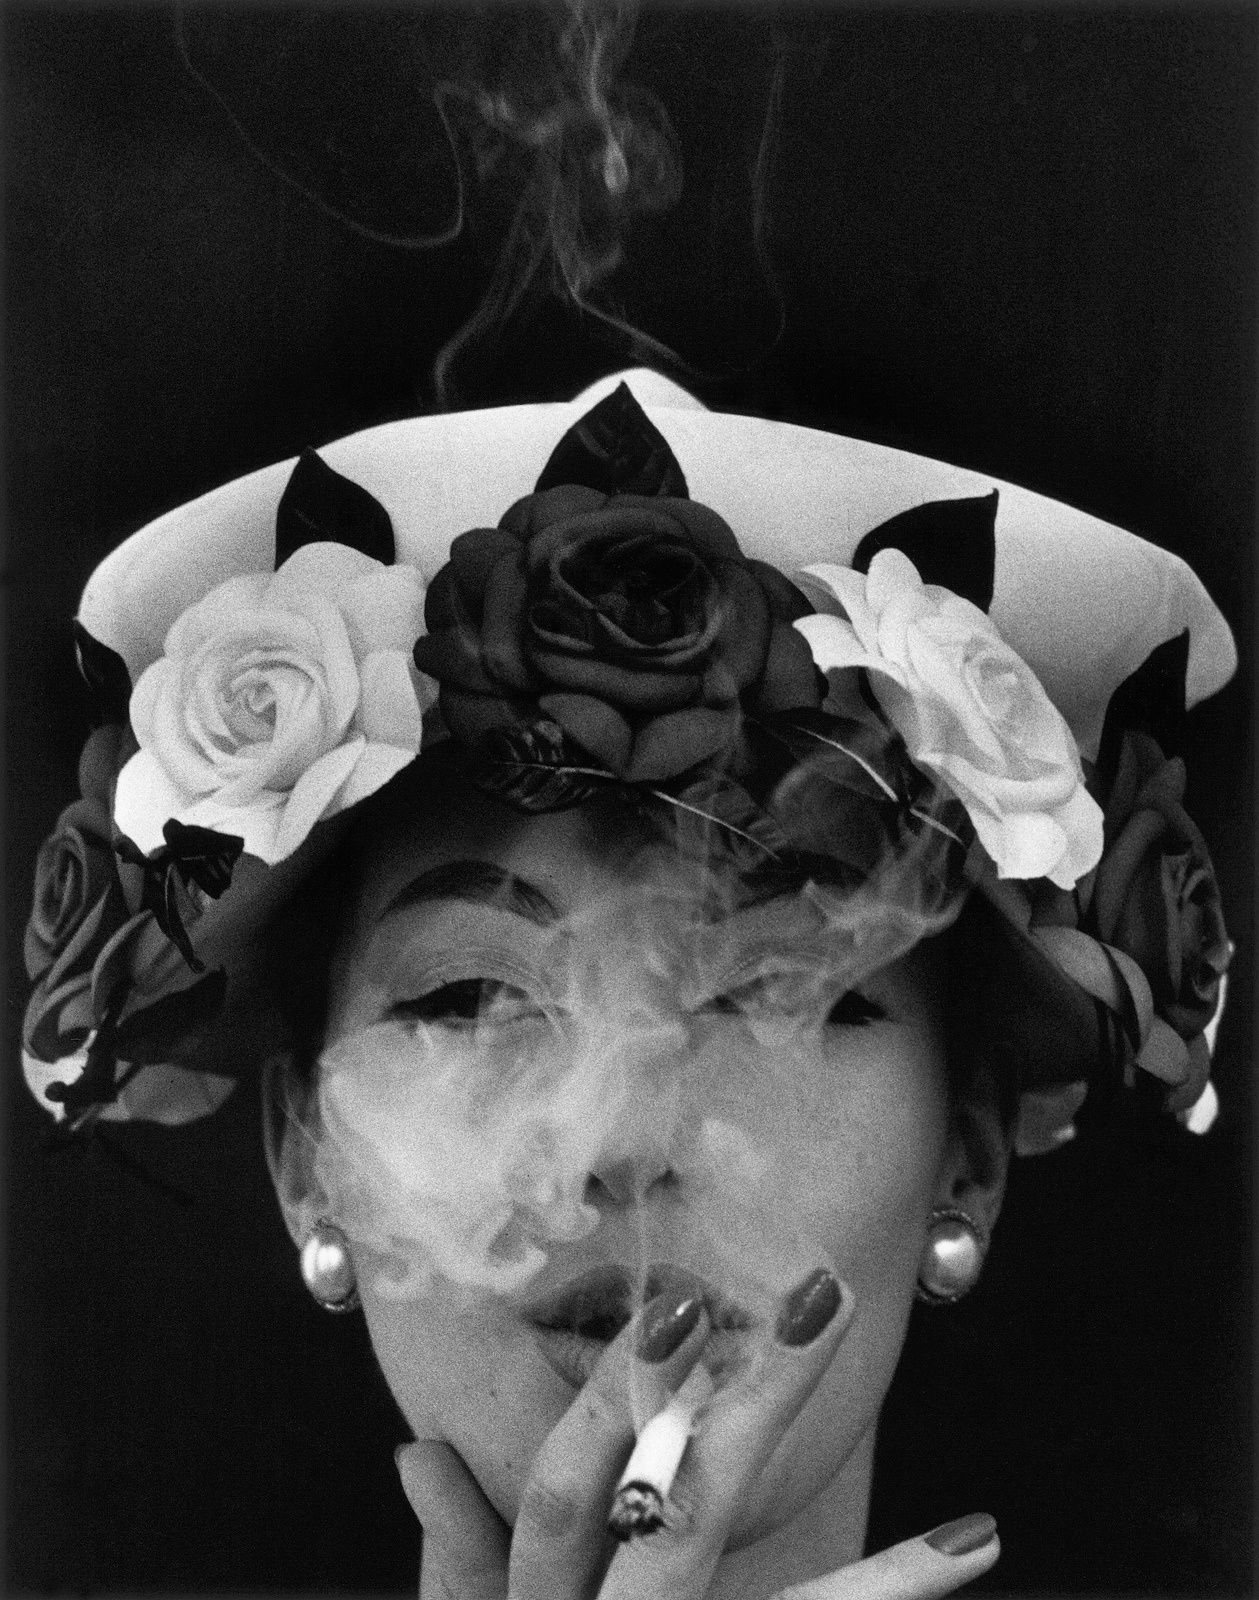 Hat and fives Roses, Vogue, 1956 - Source: northcountrypublicradio.org